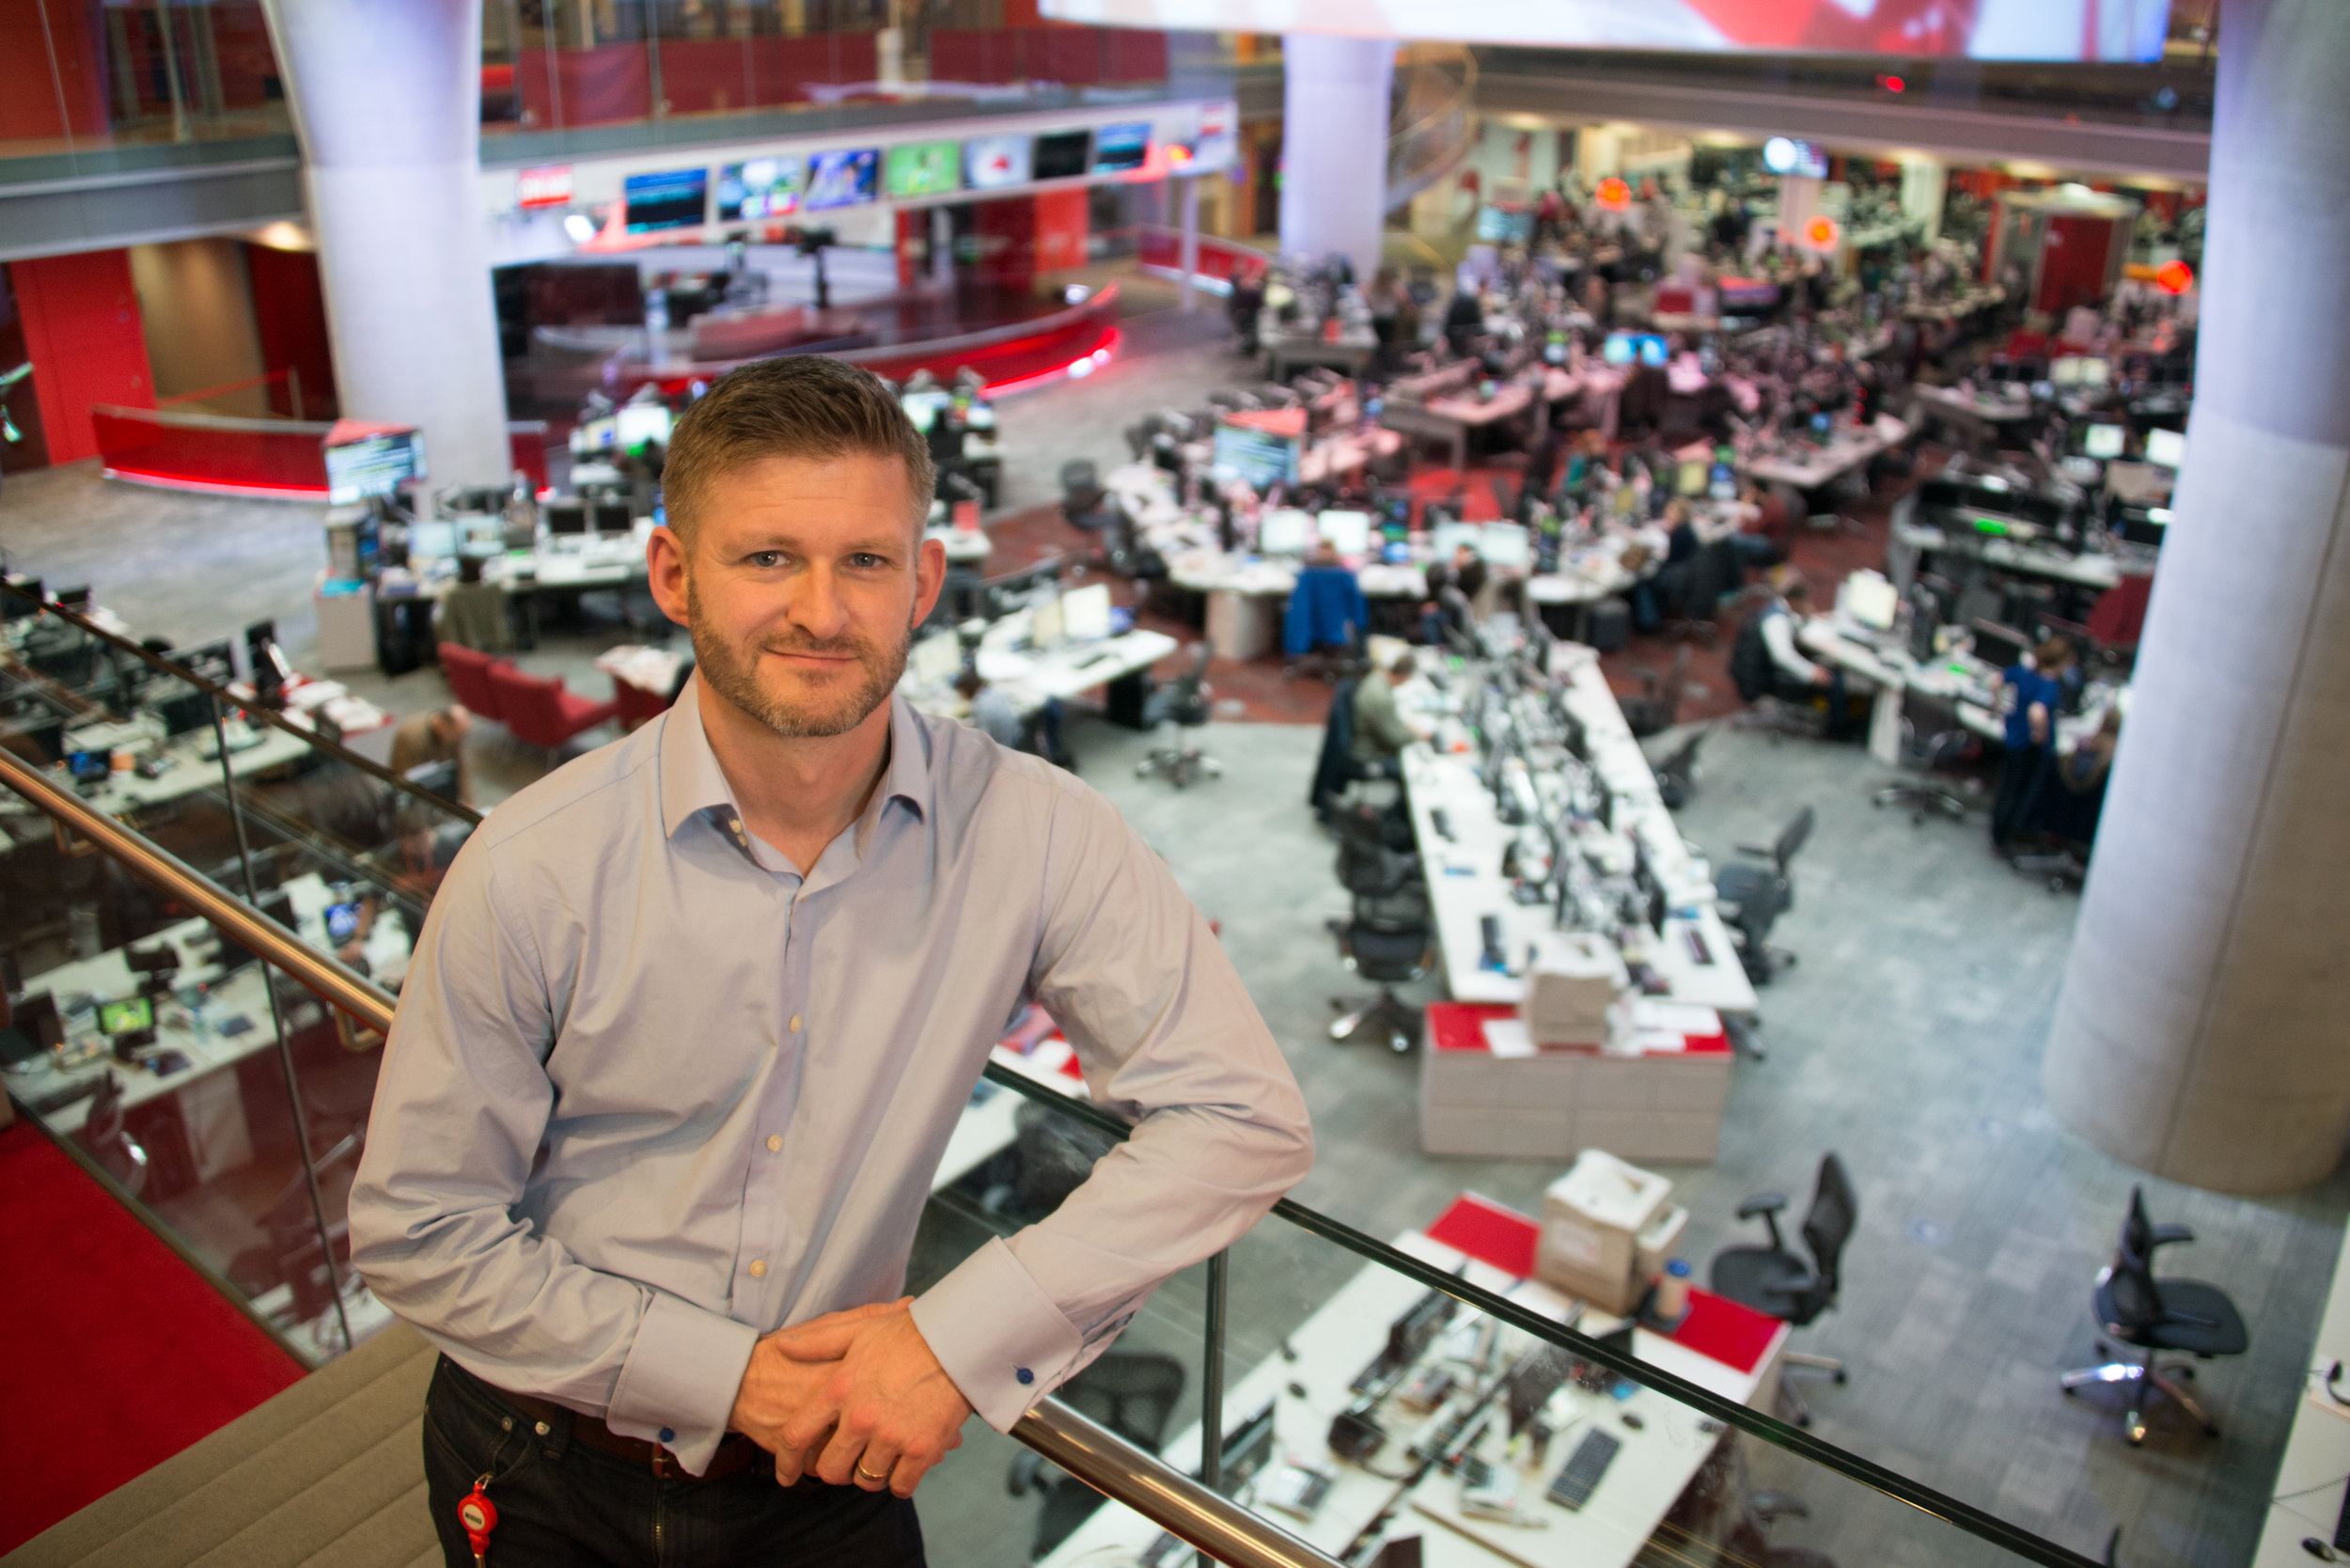 In the BBC Newsroom (London, 2014)